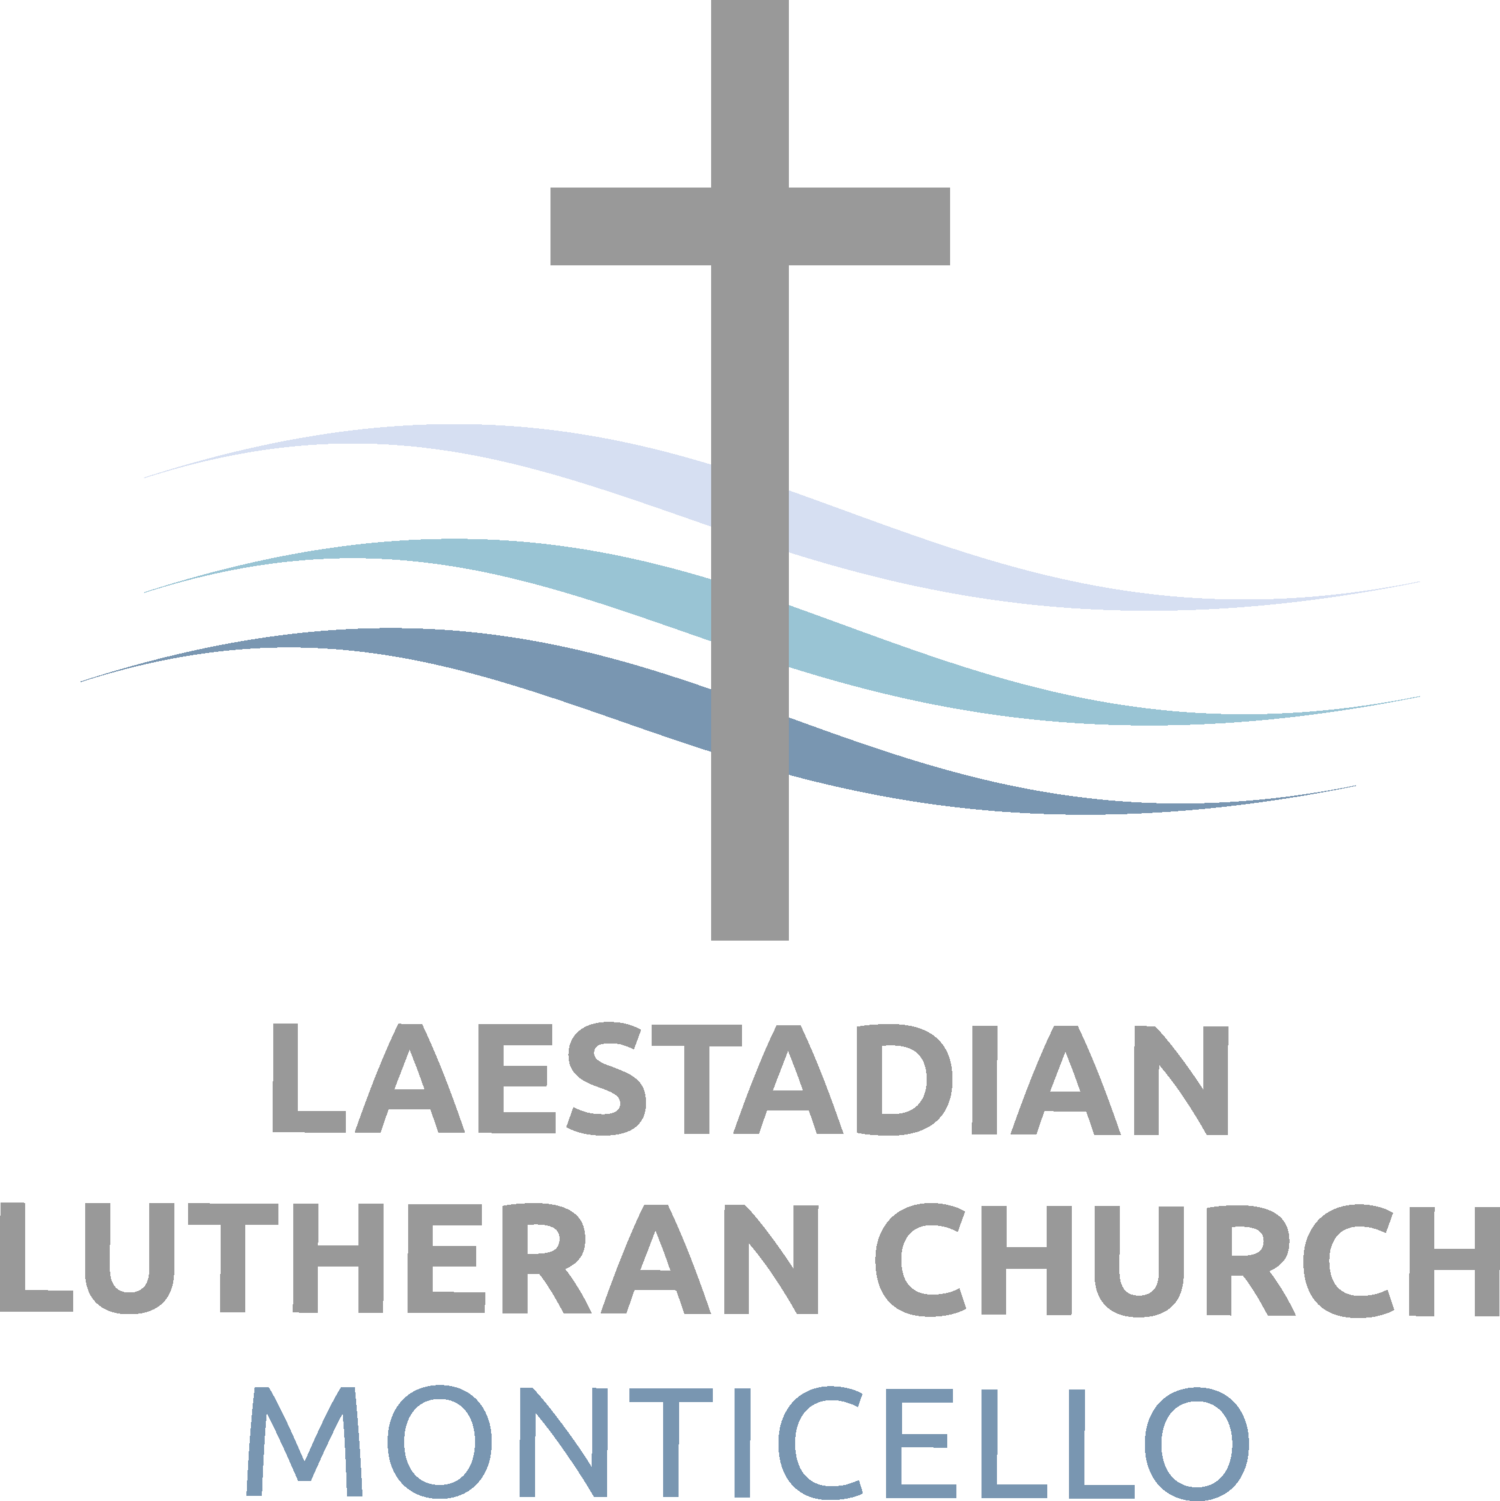 Laestadian Lutheran Church of Monticello